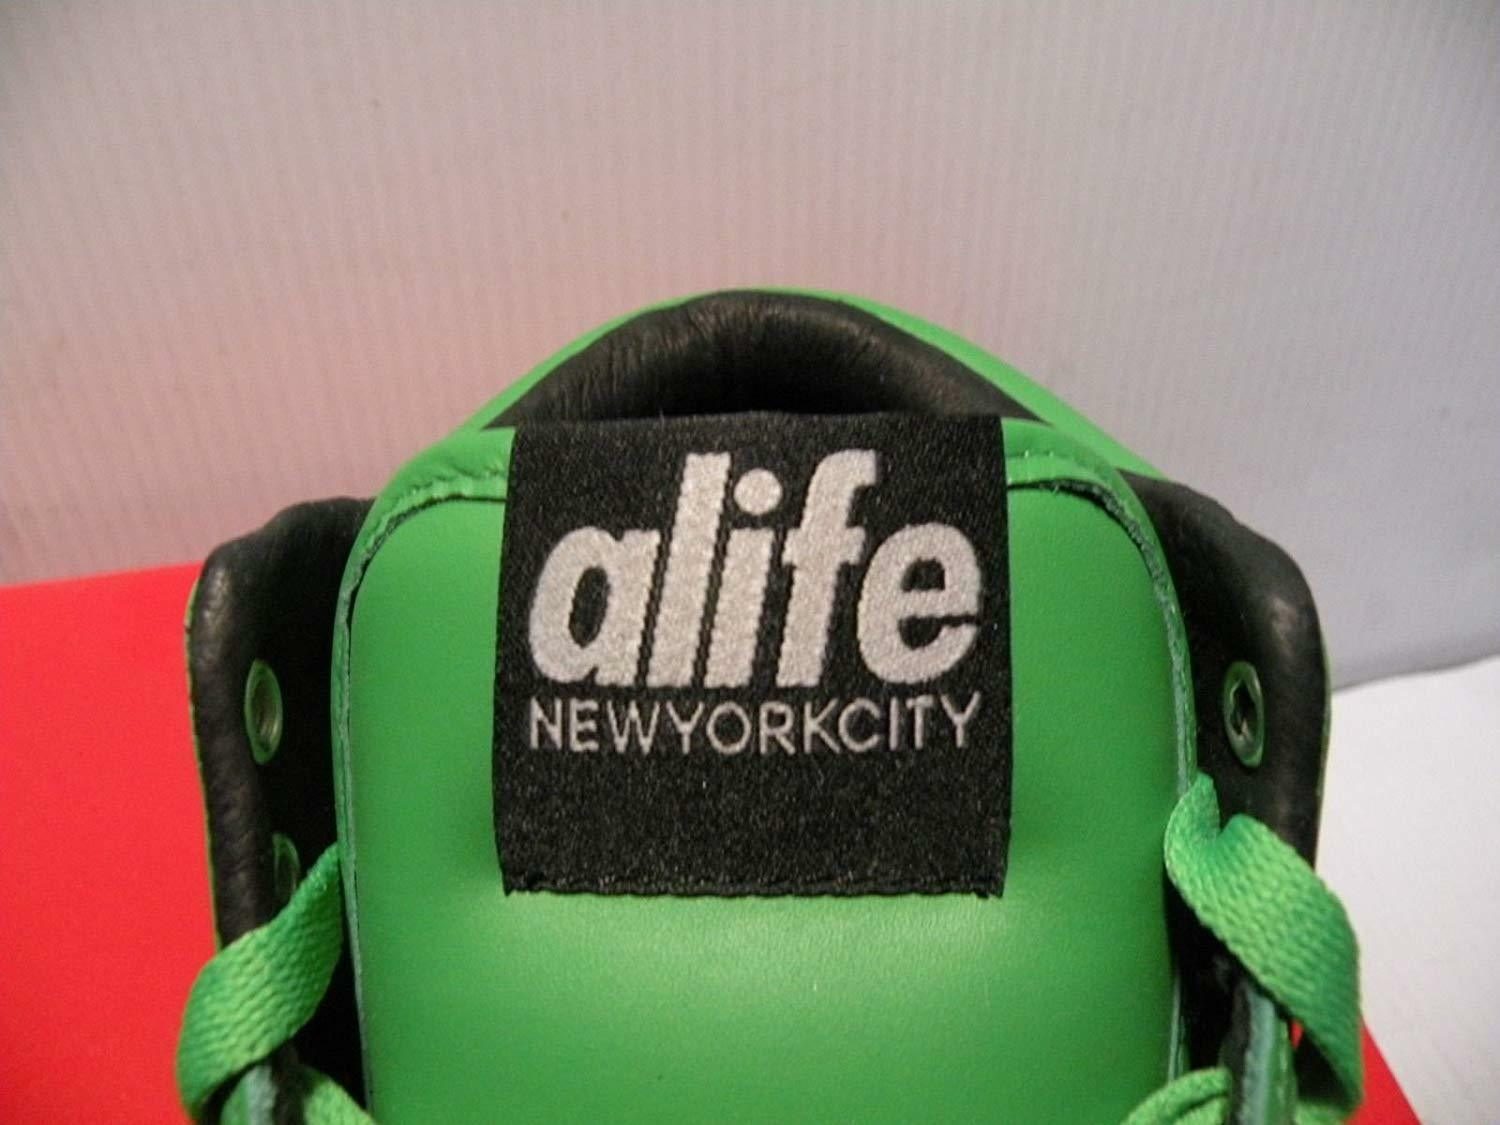 ALIFE EVERYBODY MID MID MID PRO LEATHER baskets femmes chaussures vert S91EVHMP Taille 8.5 NEW 017c24